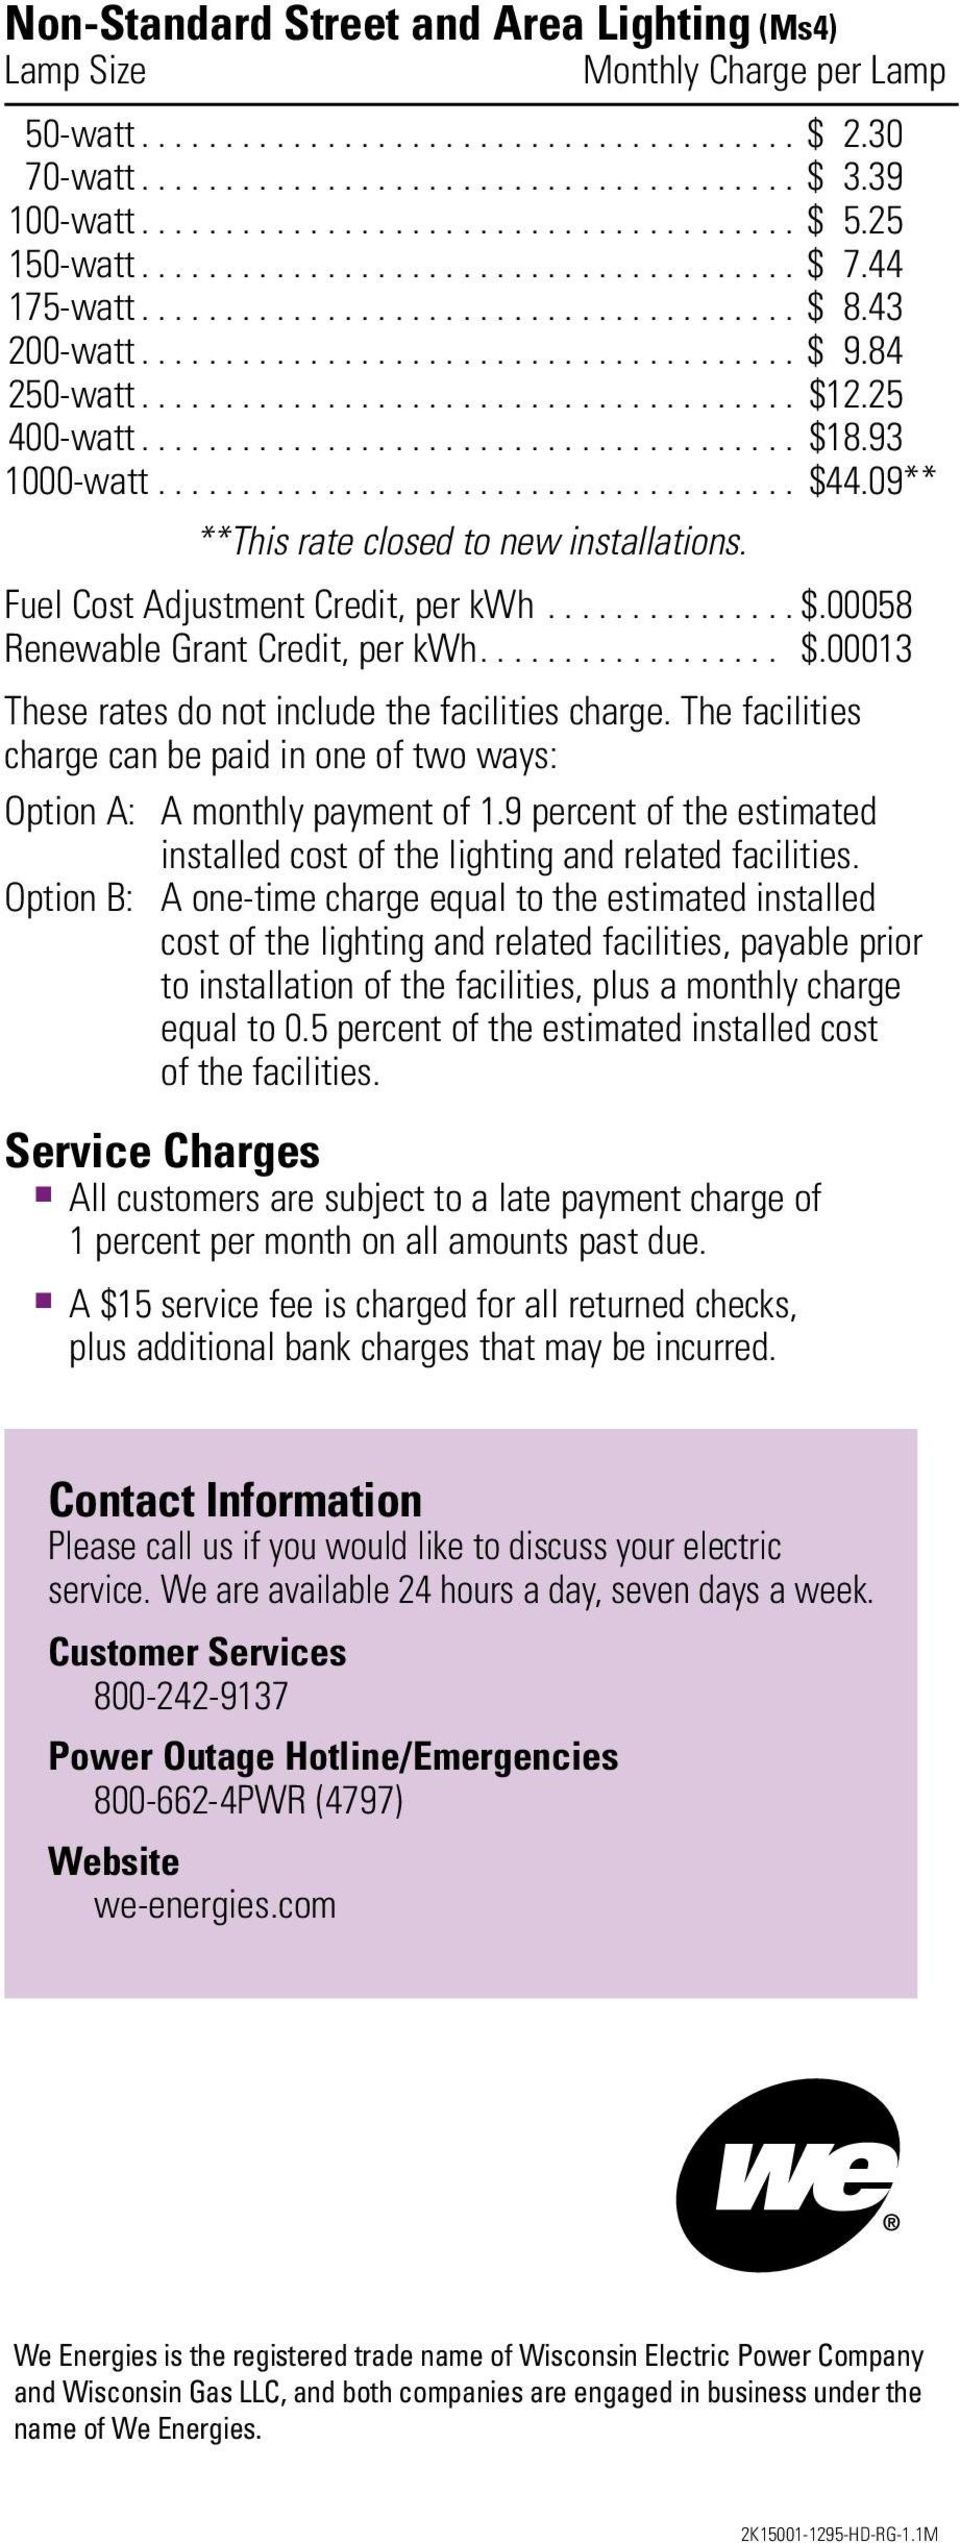 The facilities charge can be paid in one of two ways: Option A: A monthly payment of 1.9 percent of the estimated installed cost of the lighting and related facilities.